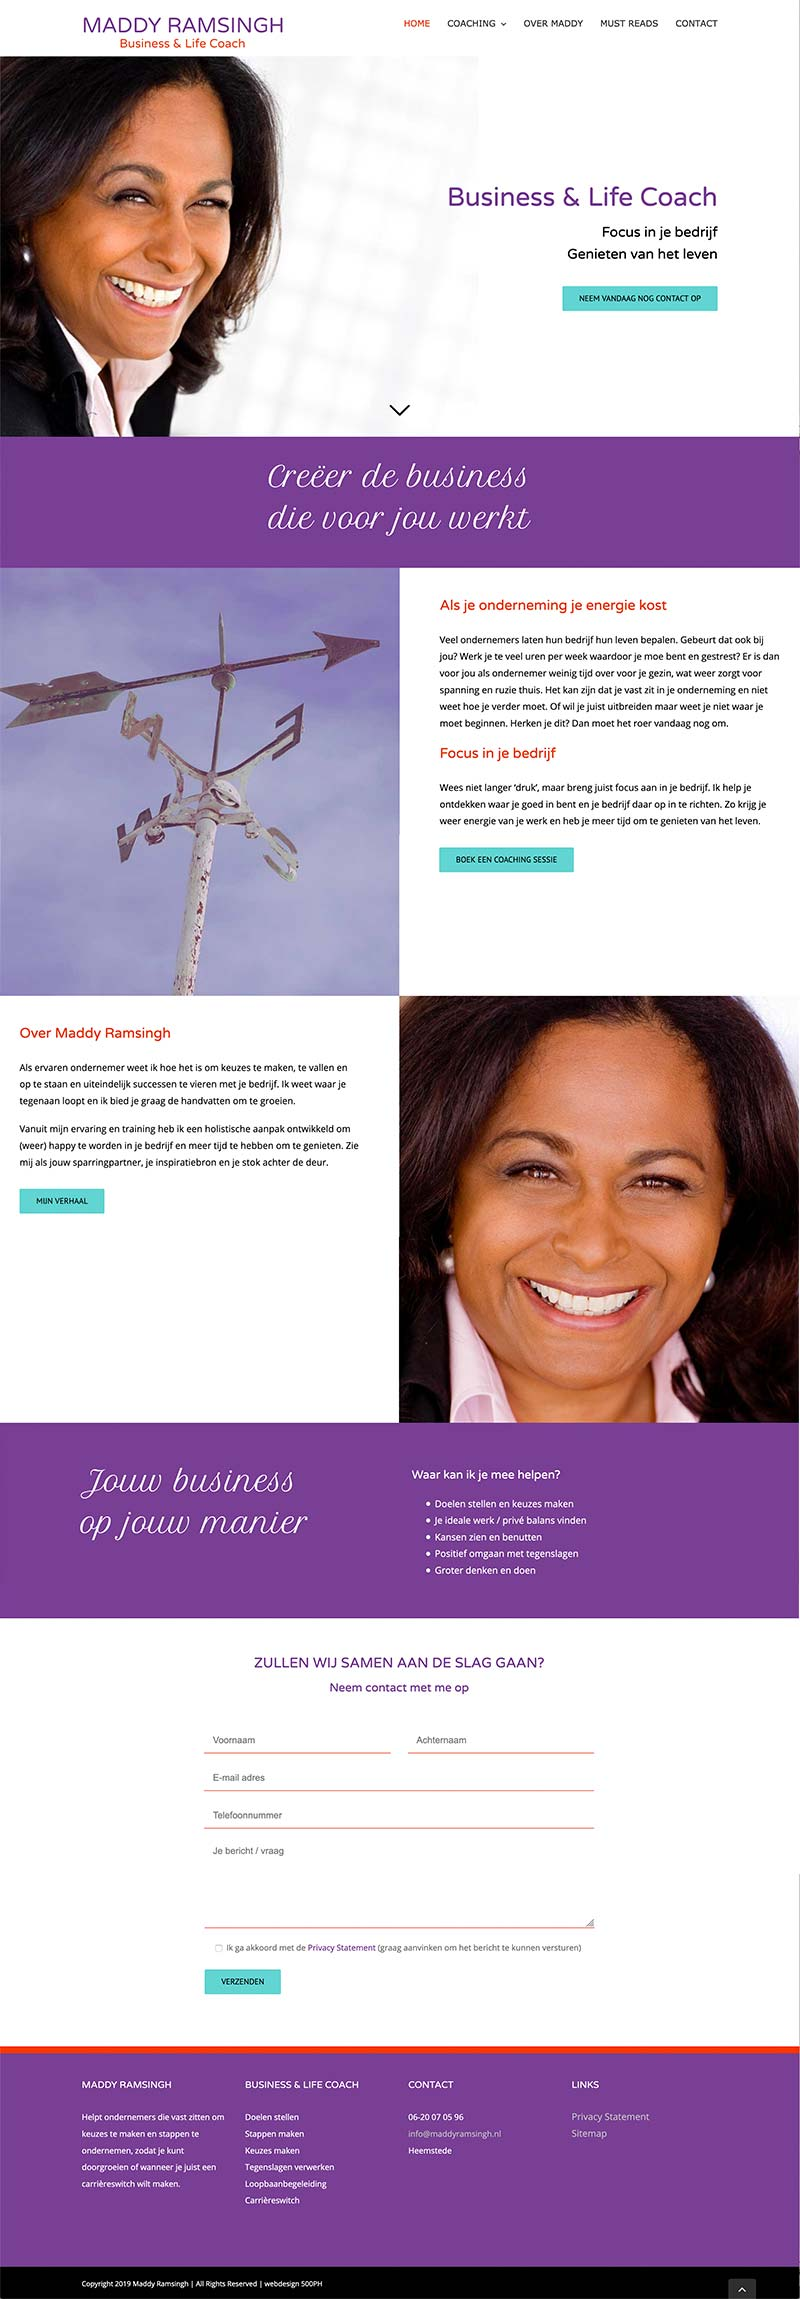 Maddy Ramsingh - website